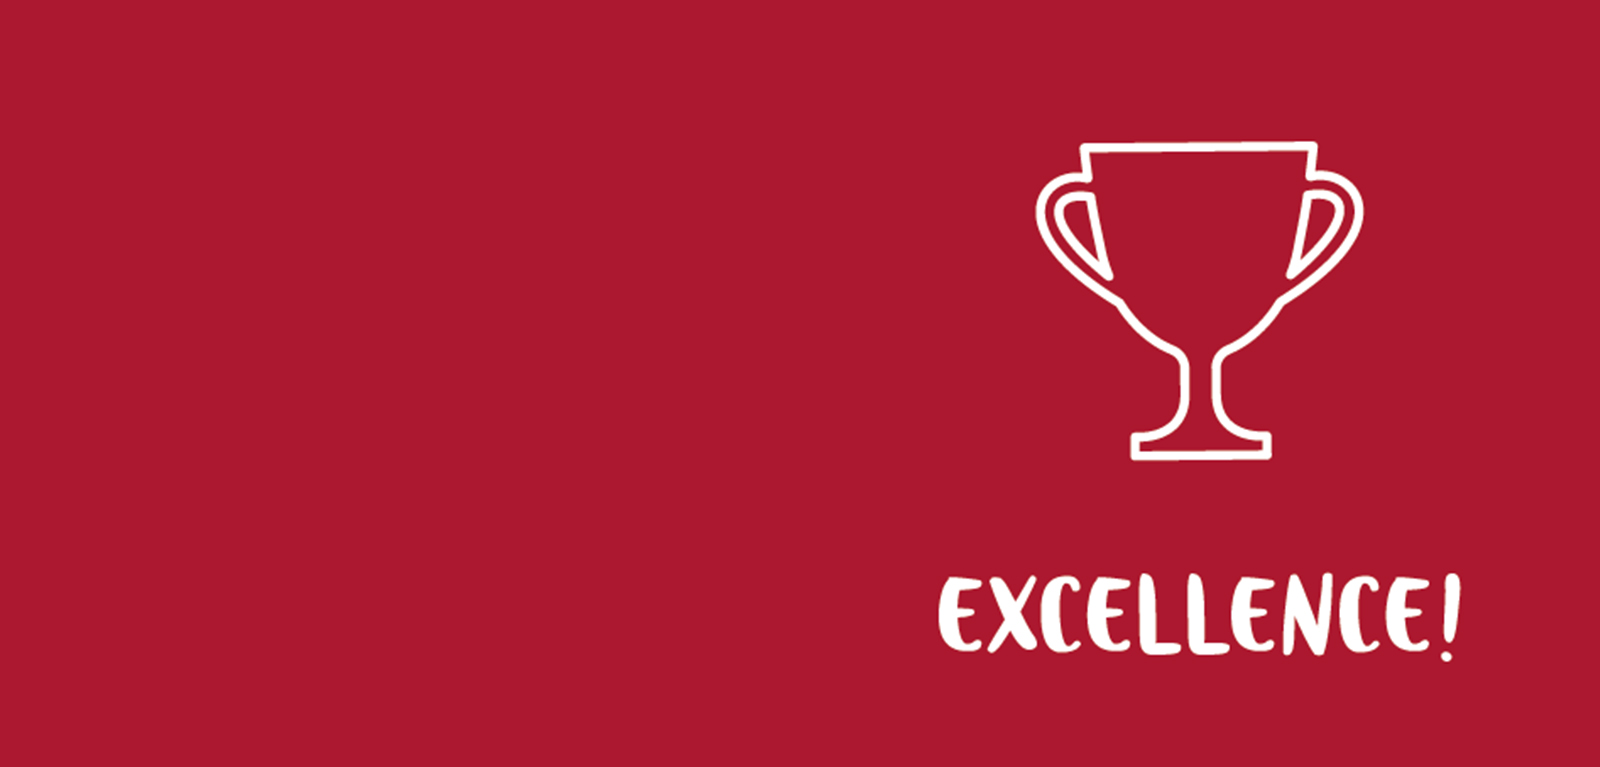 Excellence banner - red